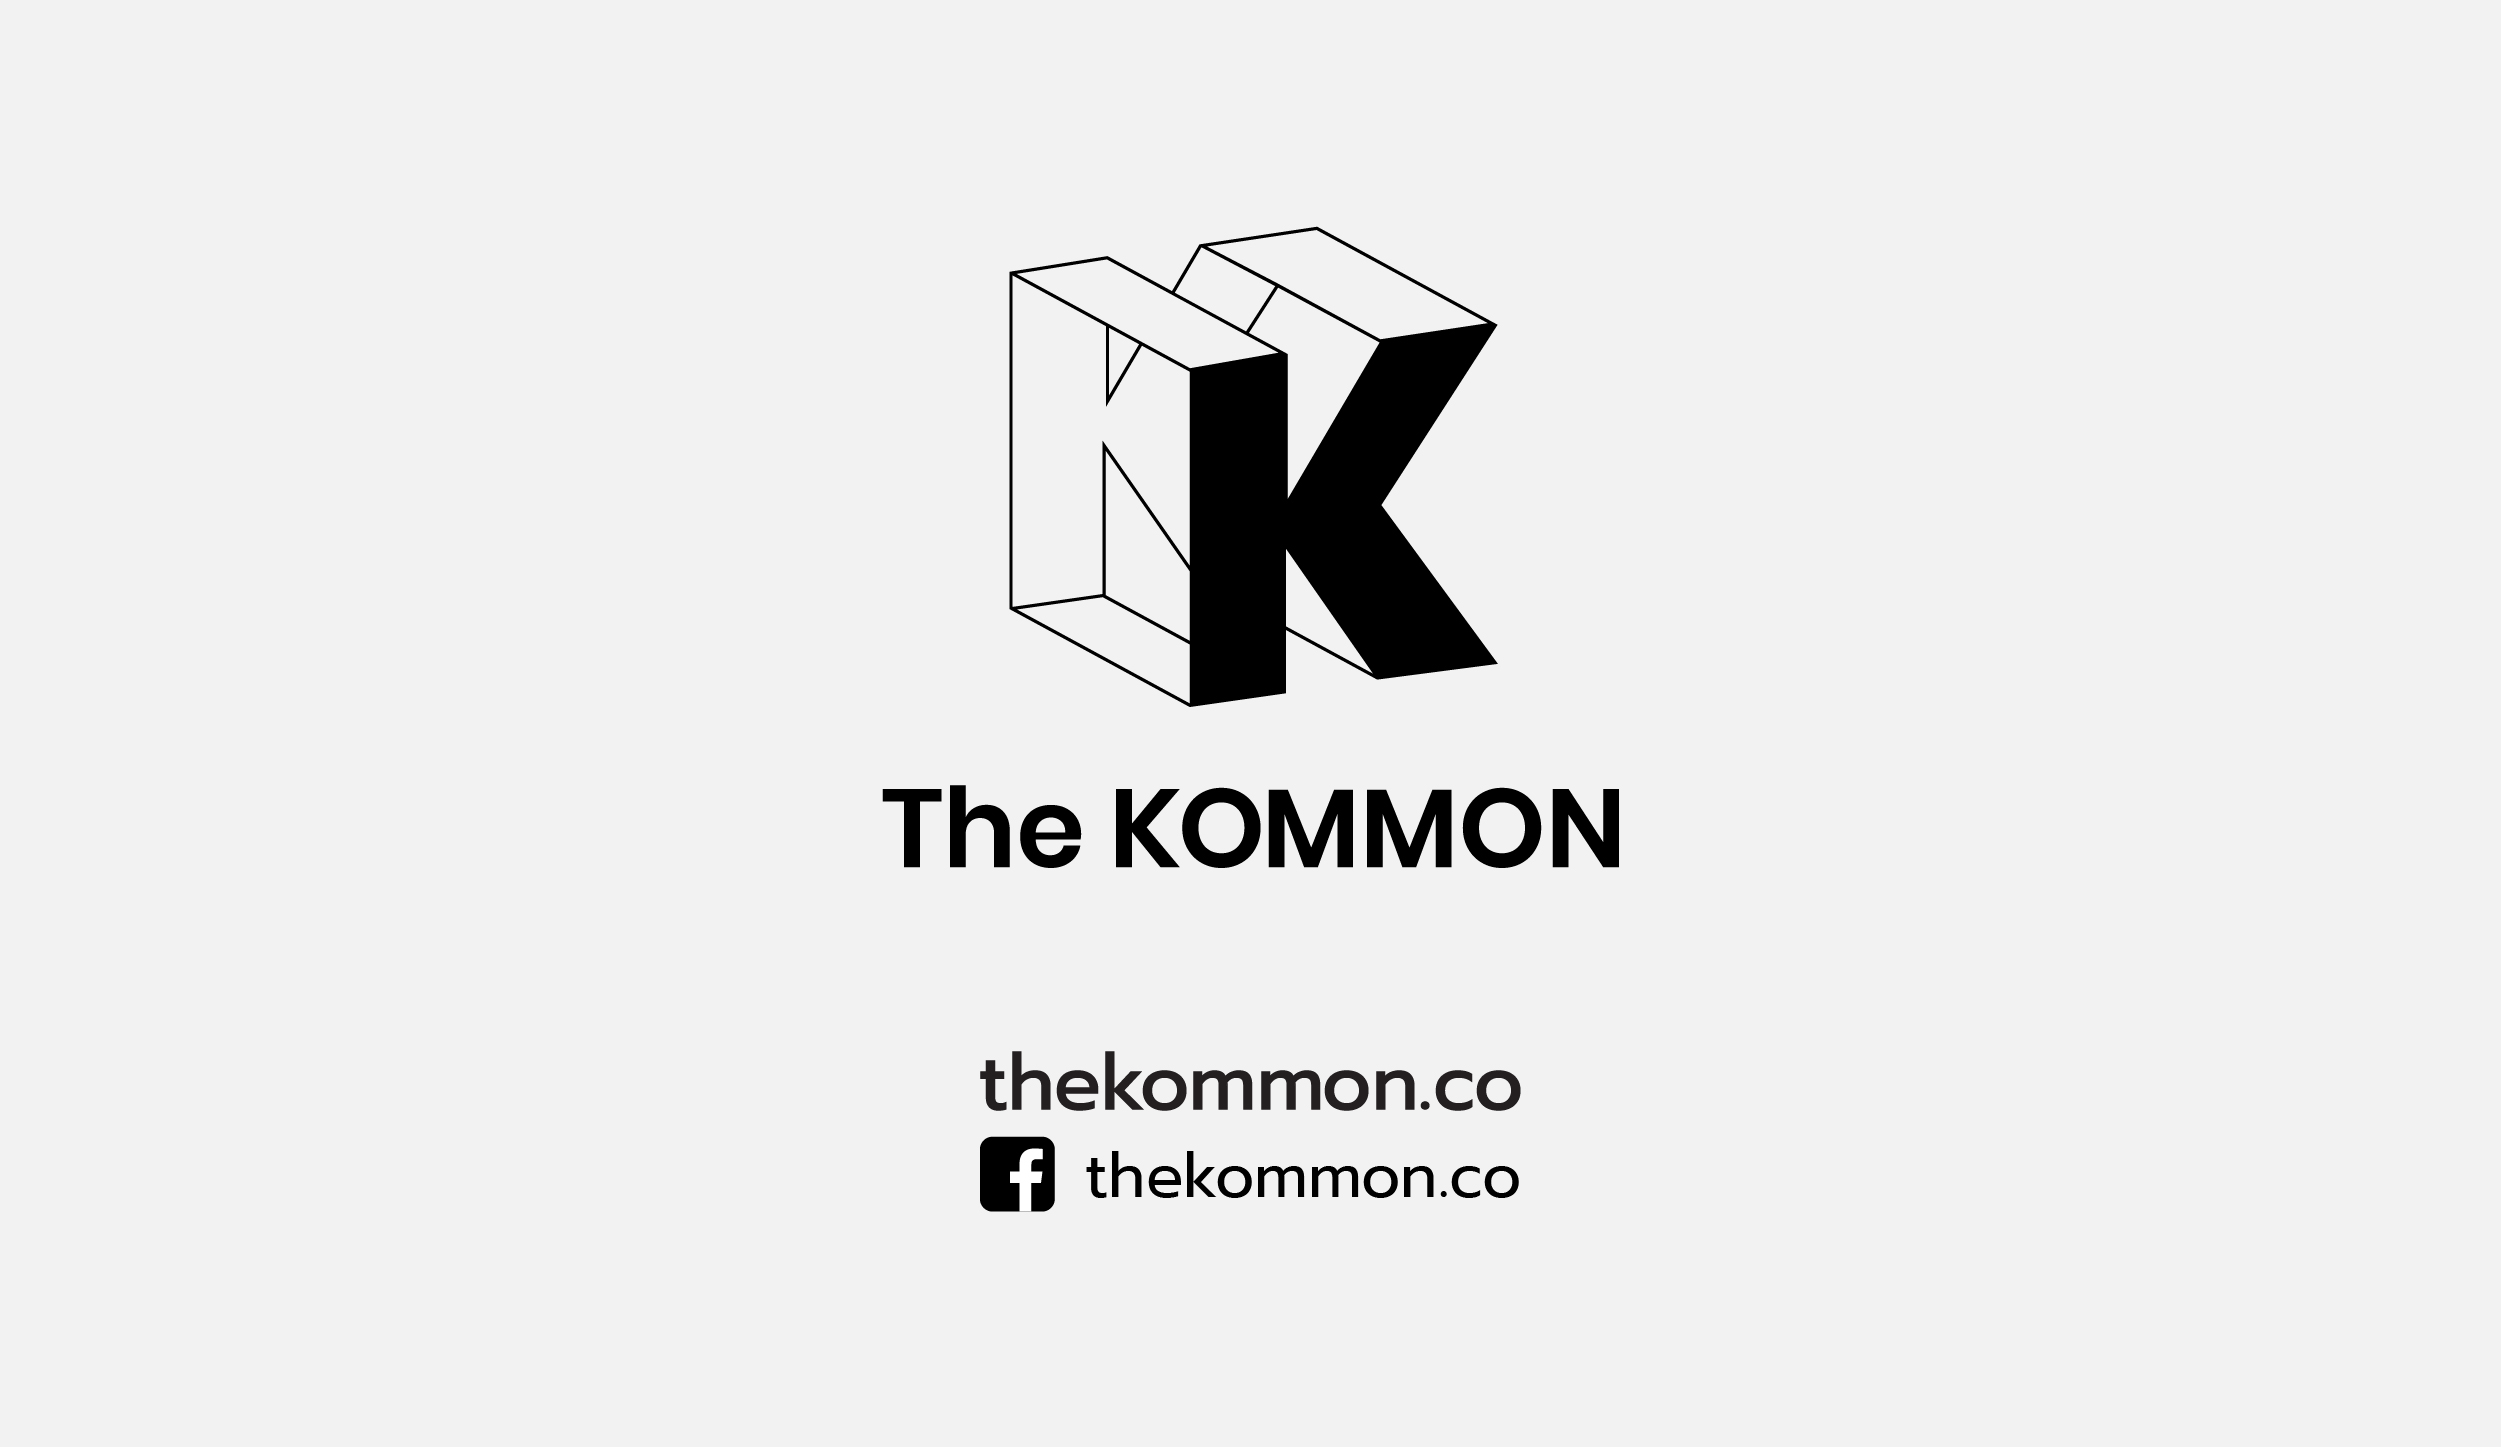 Open_The-Kommon_600x347px-07.jpg